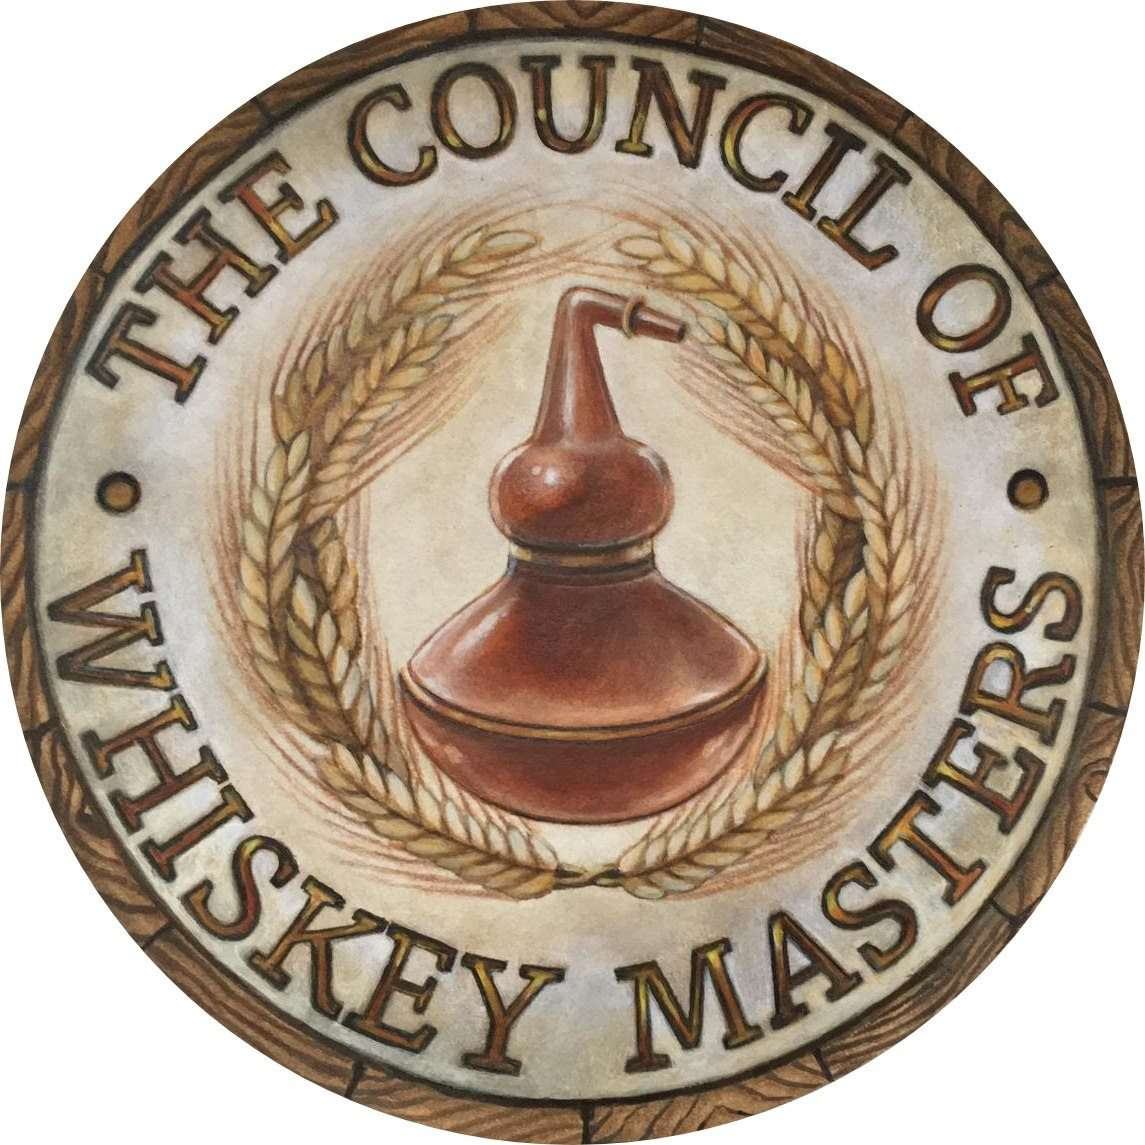 The Council of Whiskey